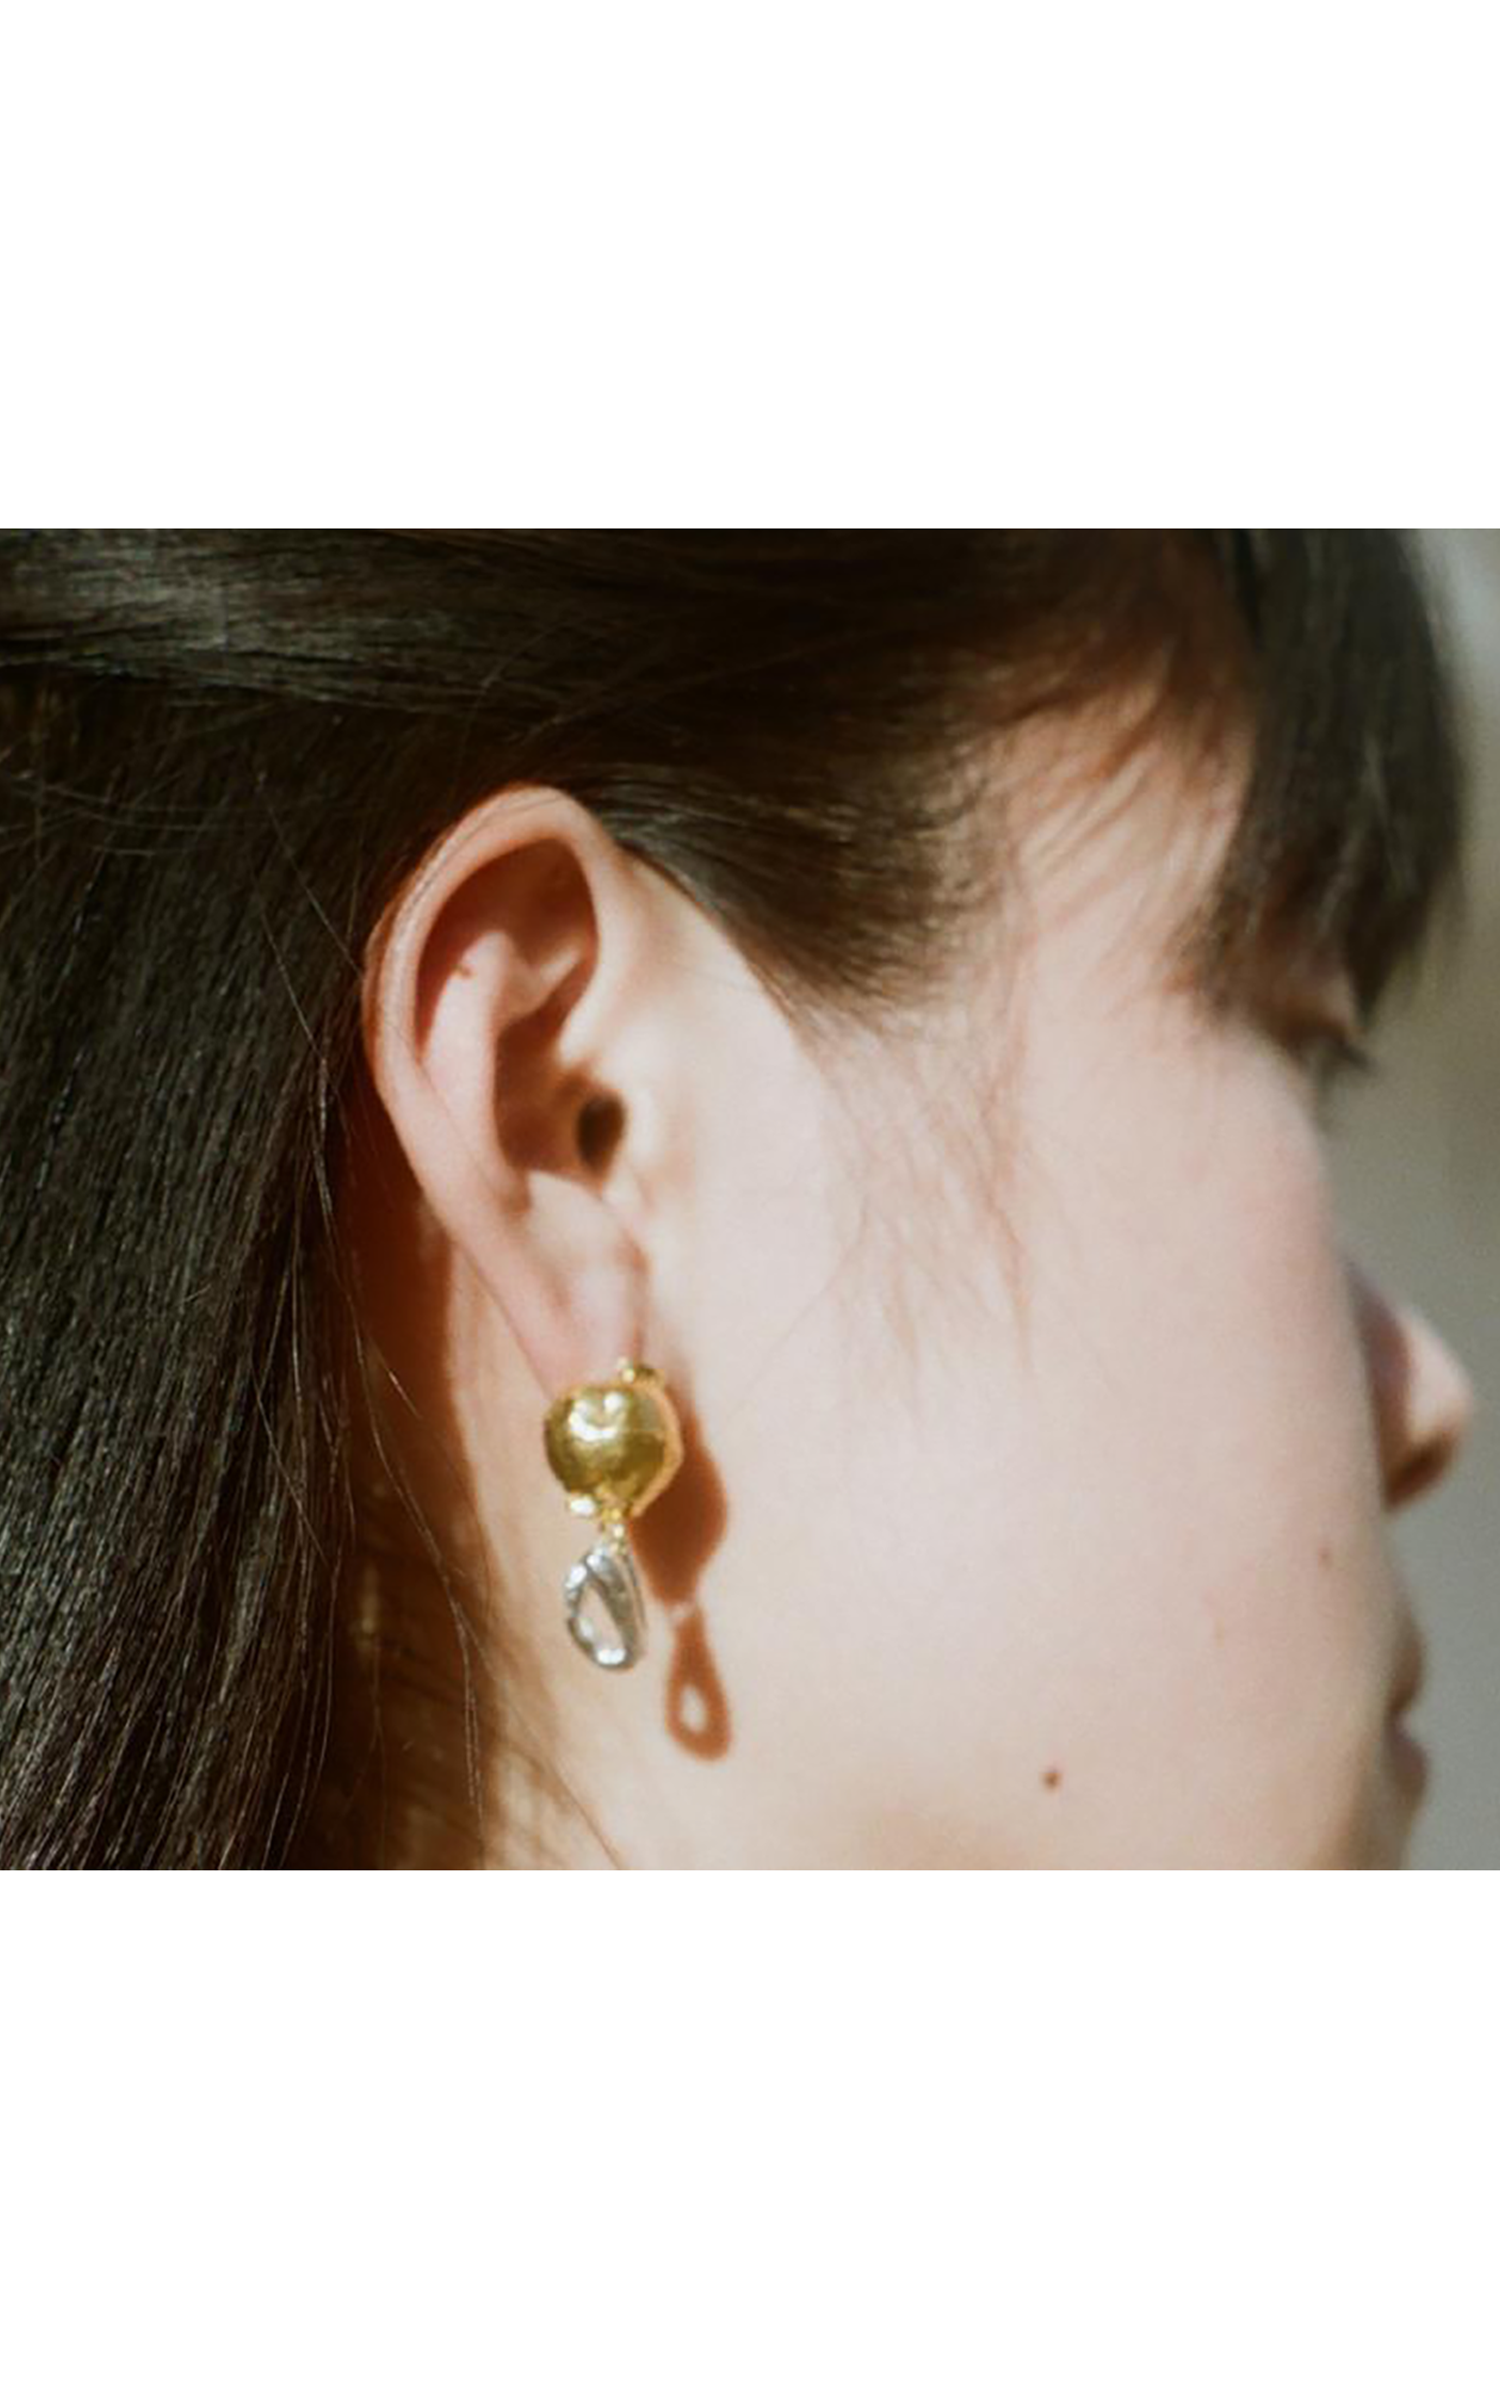 The Unbearable Lightness Earrings